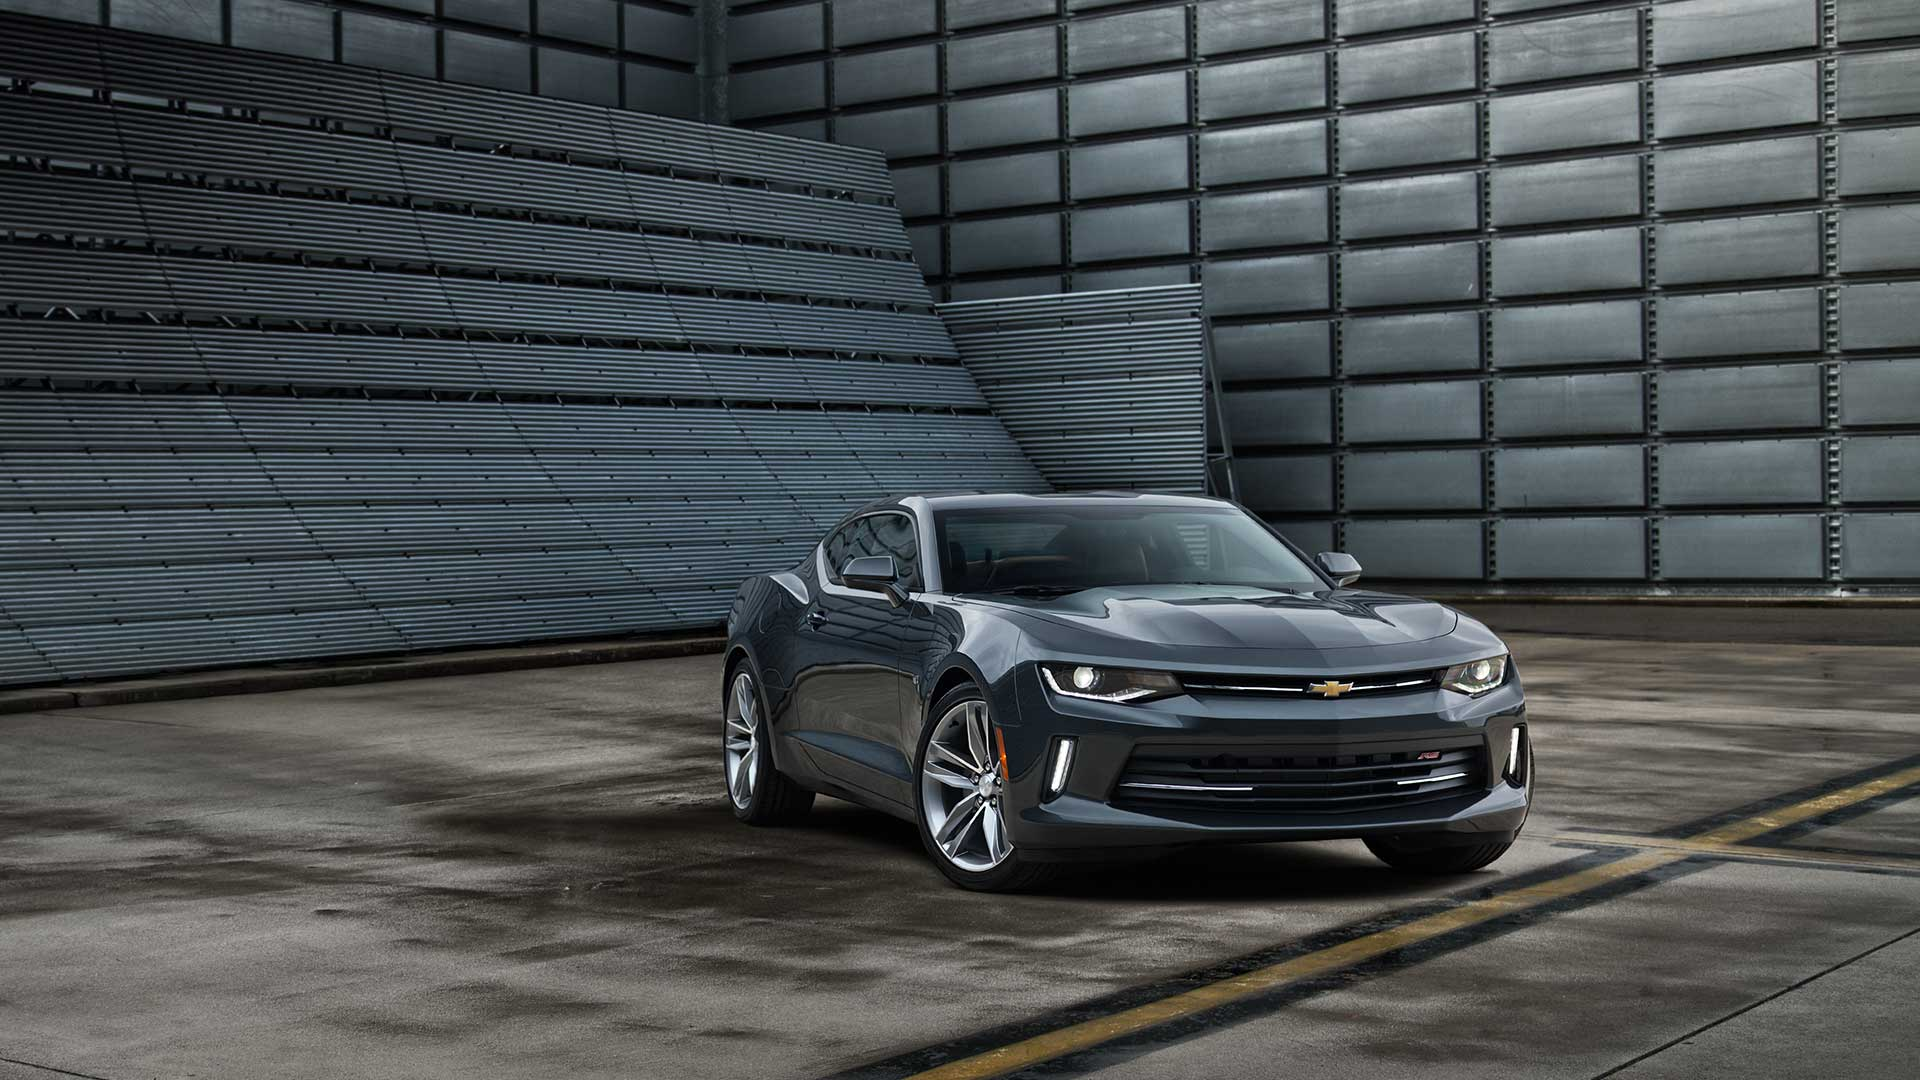 2017 chevy camaro for sale near norman ok david stanley chevy. Cars Review. Best American Auto & Cars Review